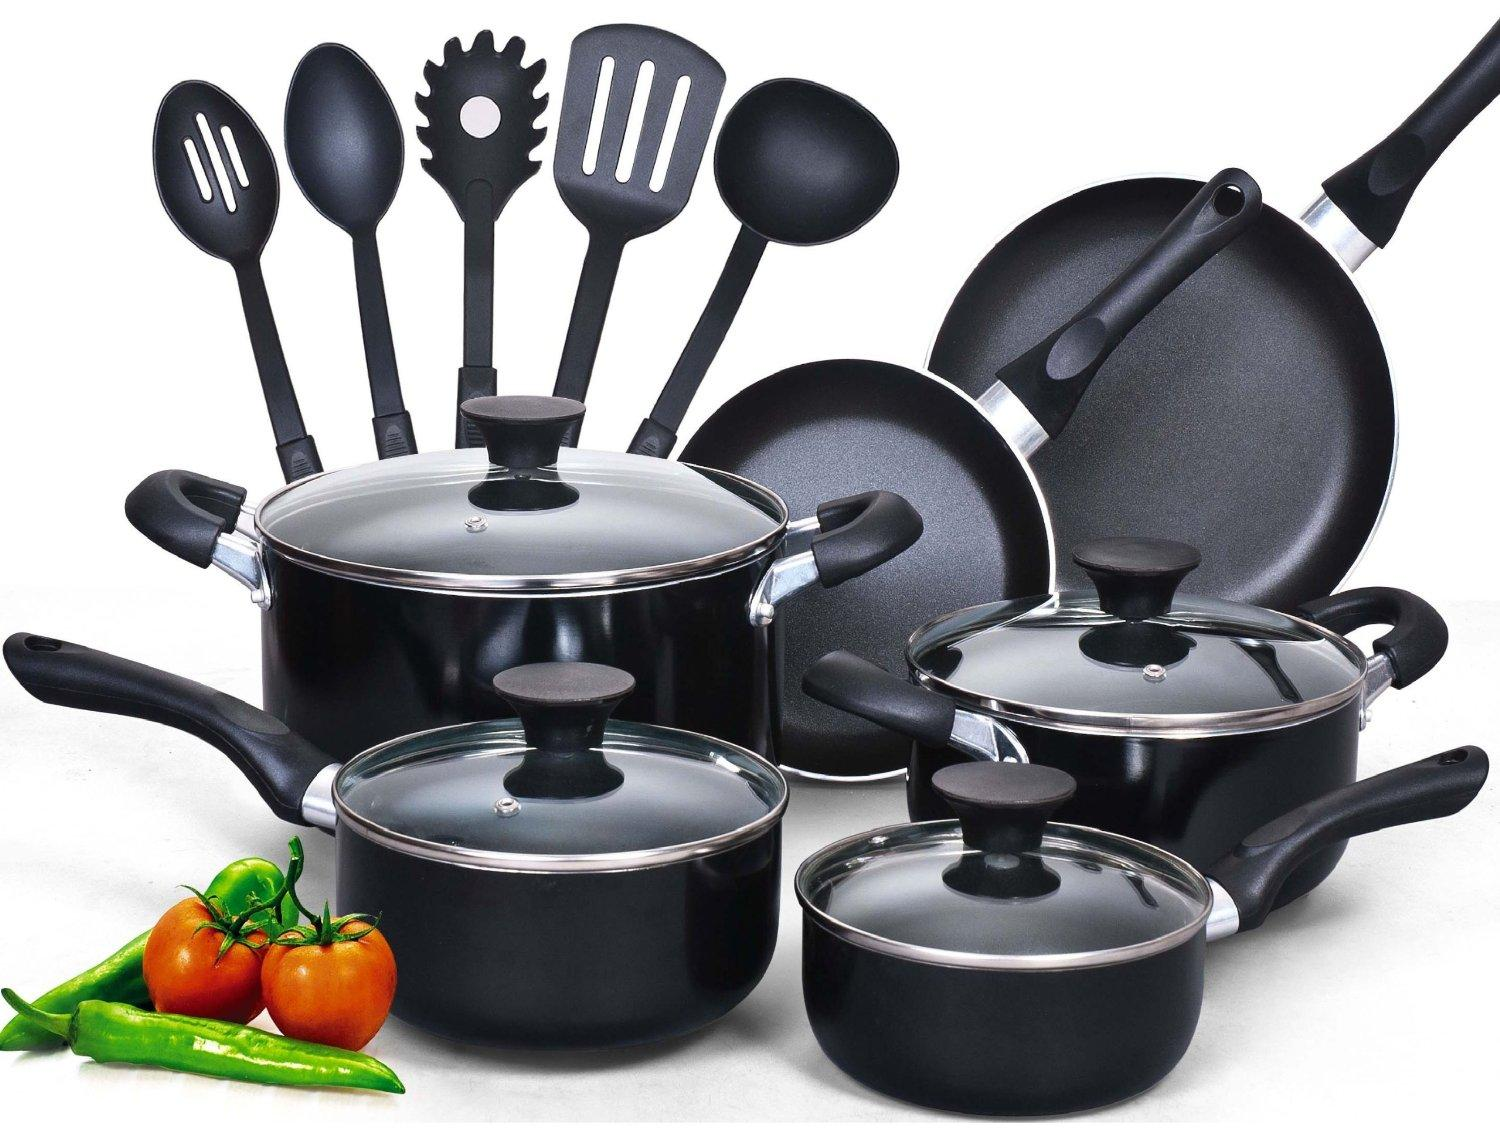 #1 Best Seller! Cook N Home 15 Piece Non stick Black Soft handle Cookware Set